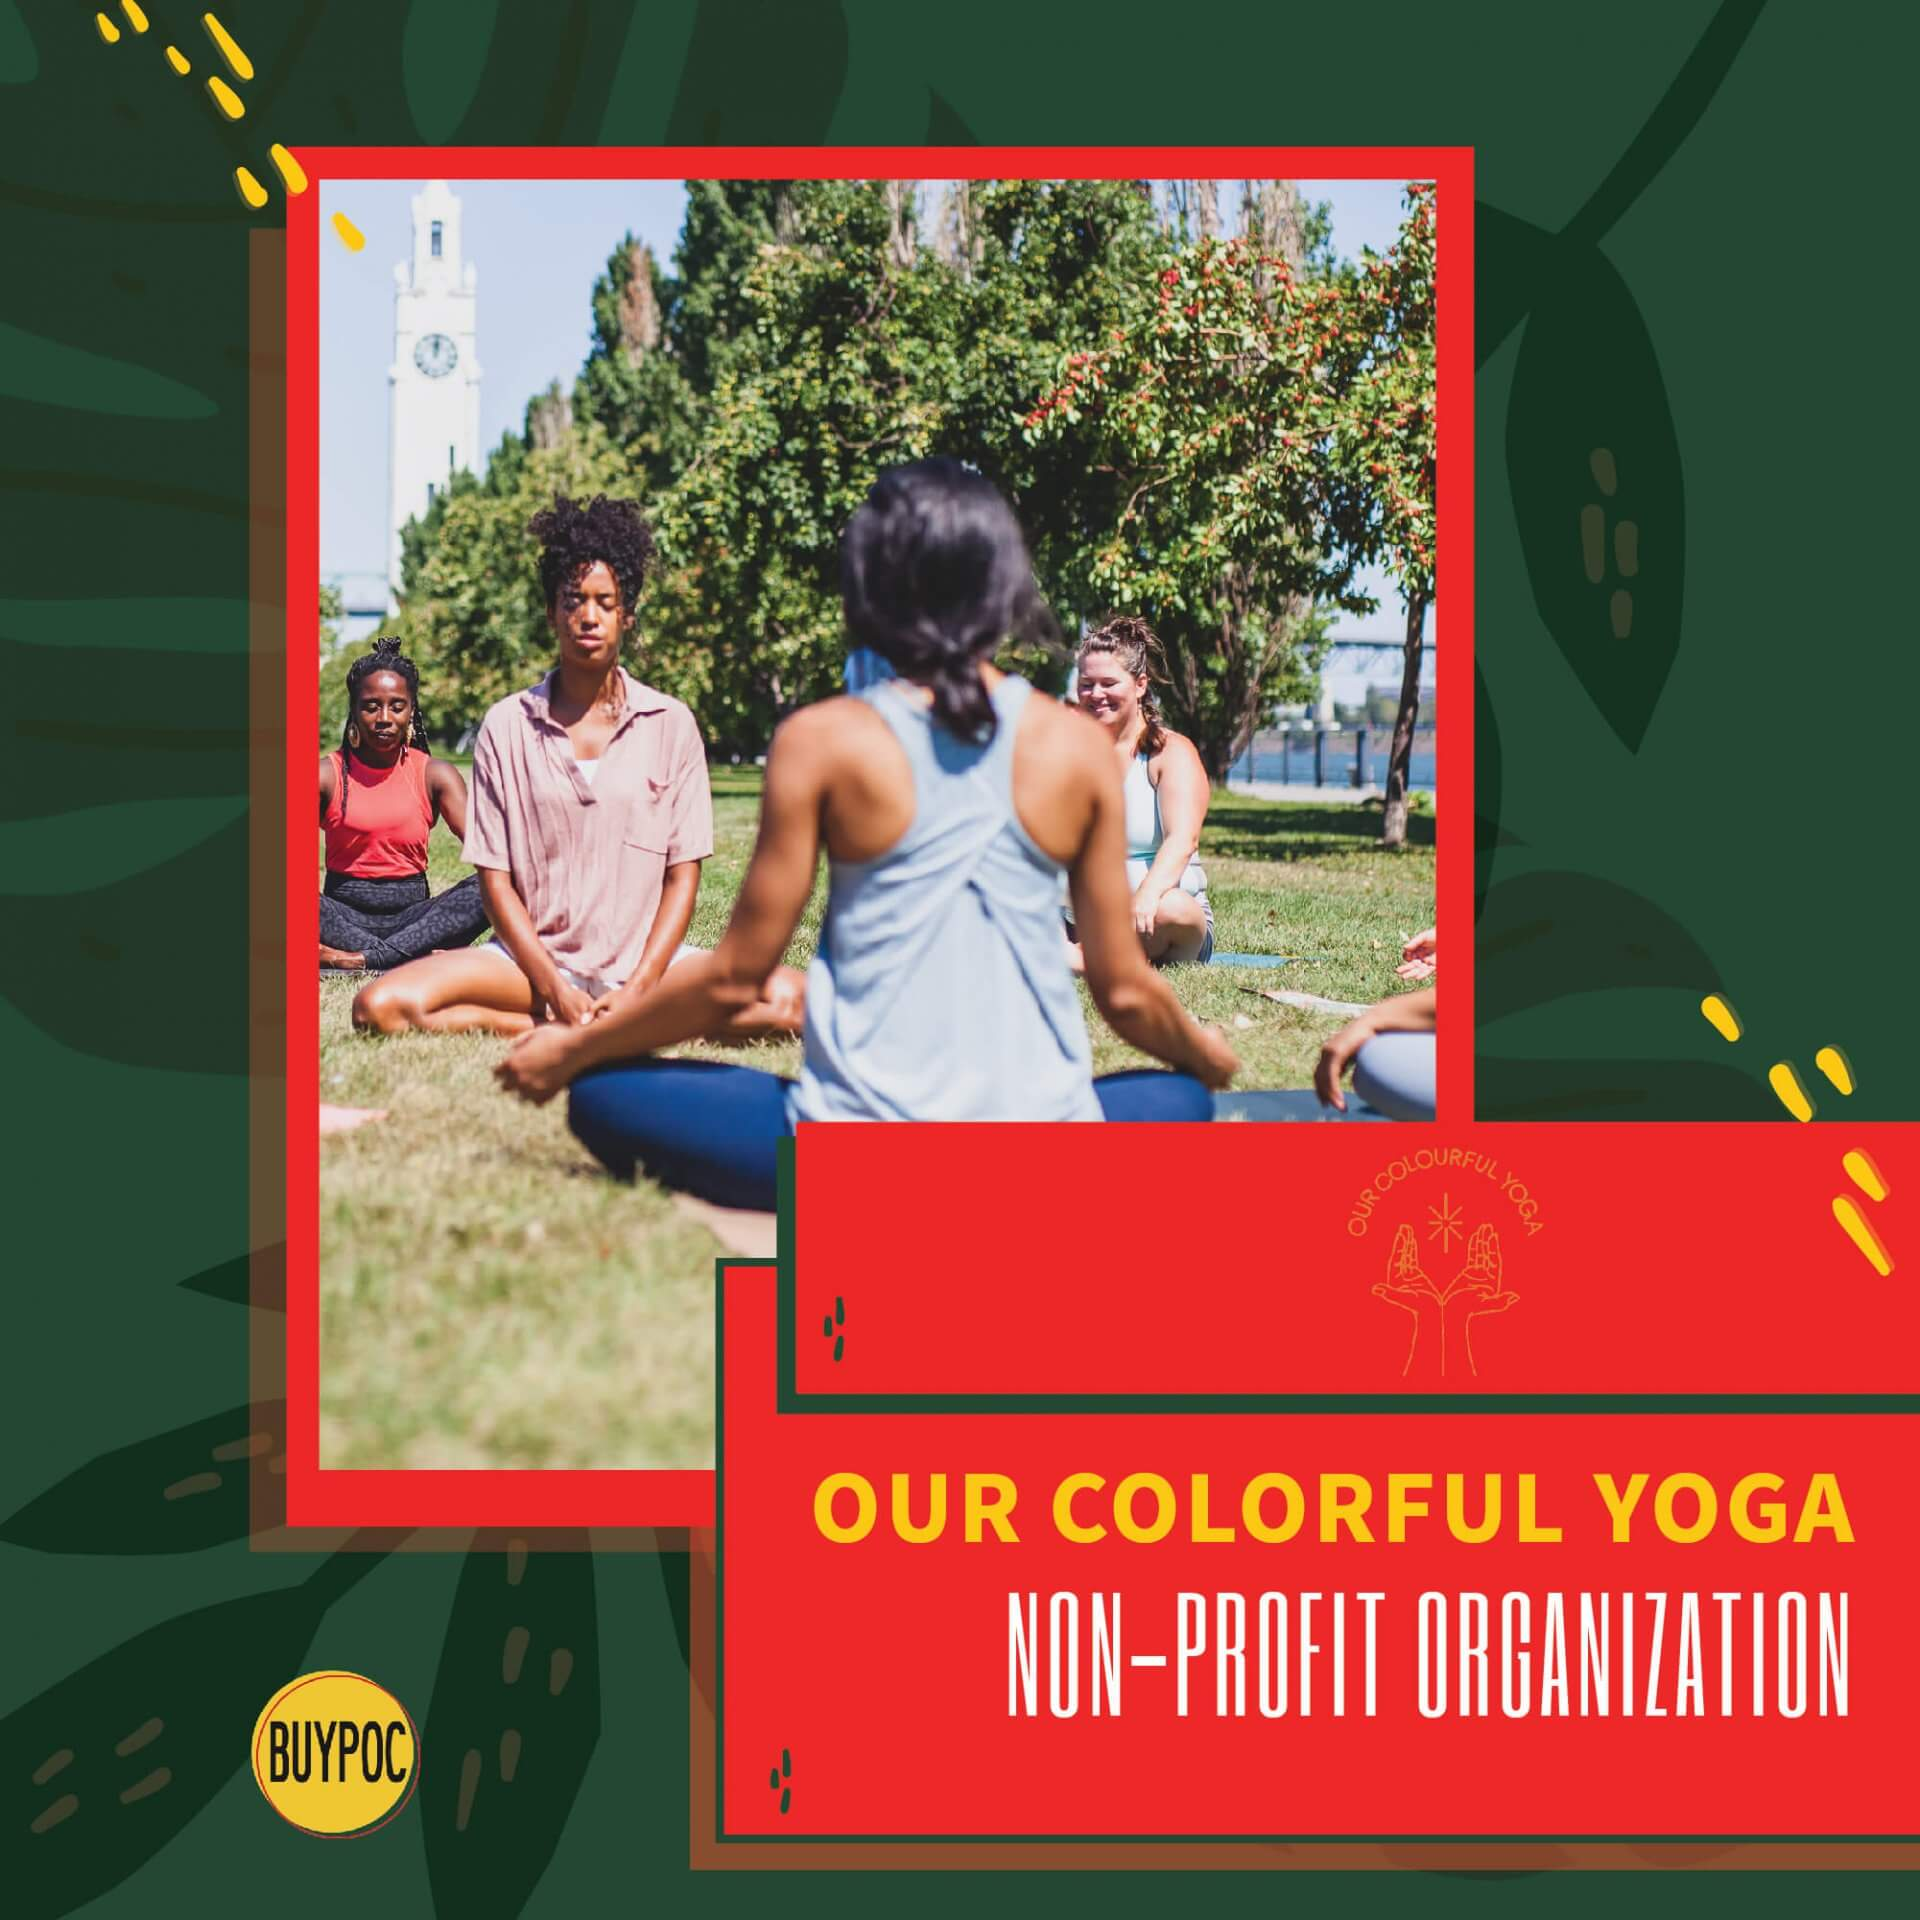 Our Colorful Yoga